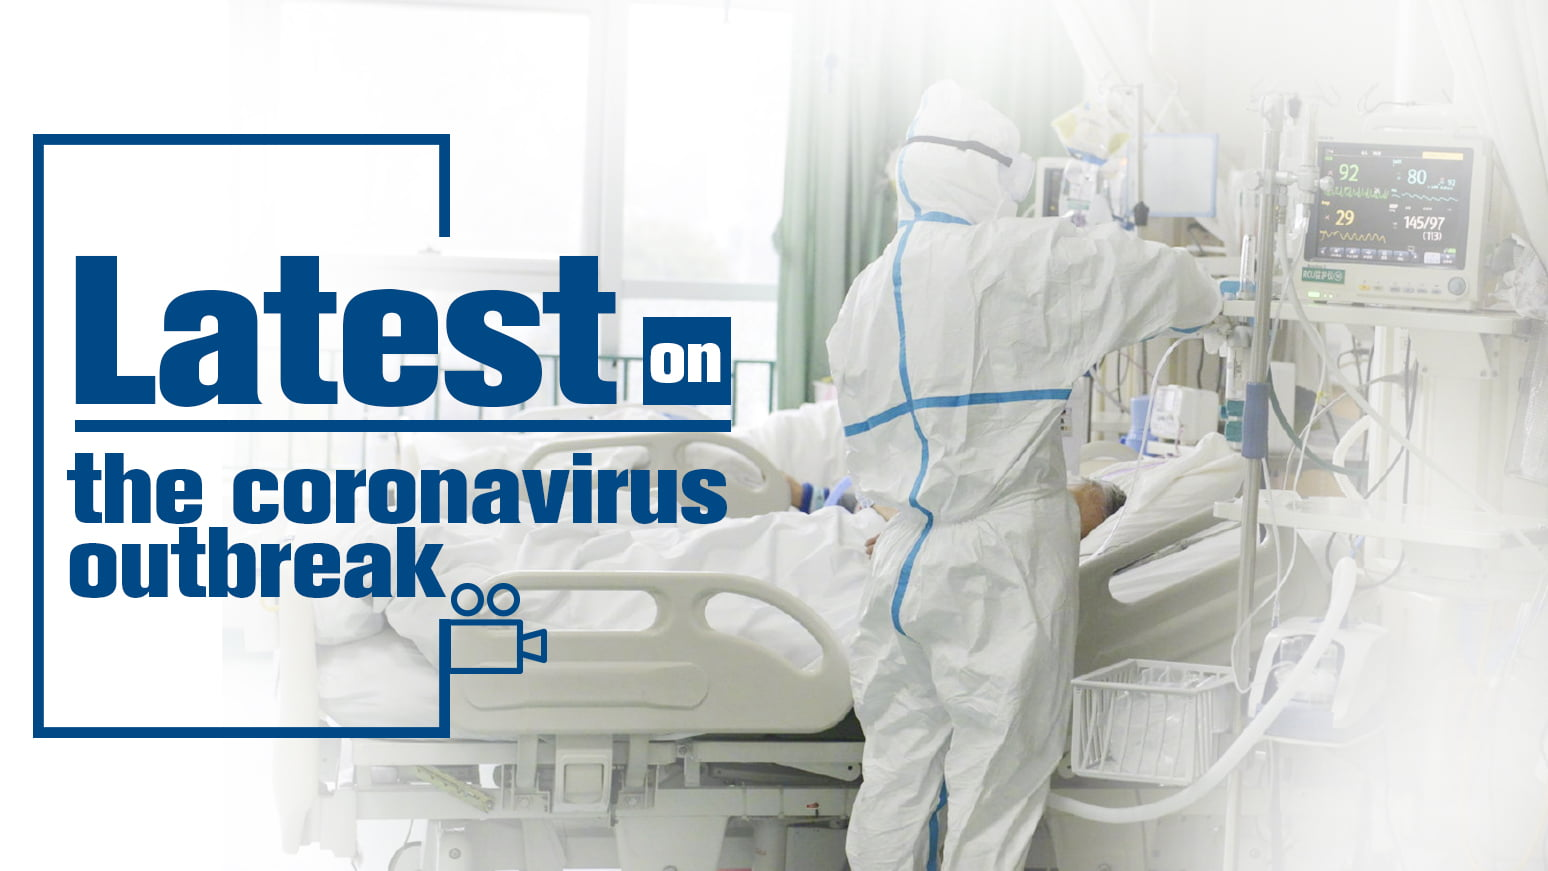 Canad á evacuate á to his nationals of the cruise ship 'Diamond Princess' where there are already 355 cases of coronavirus